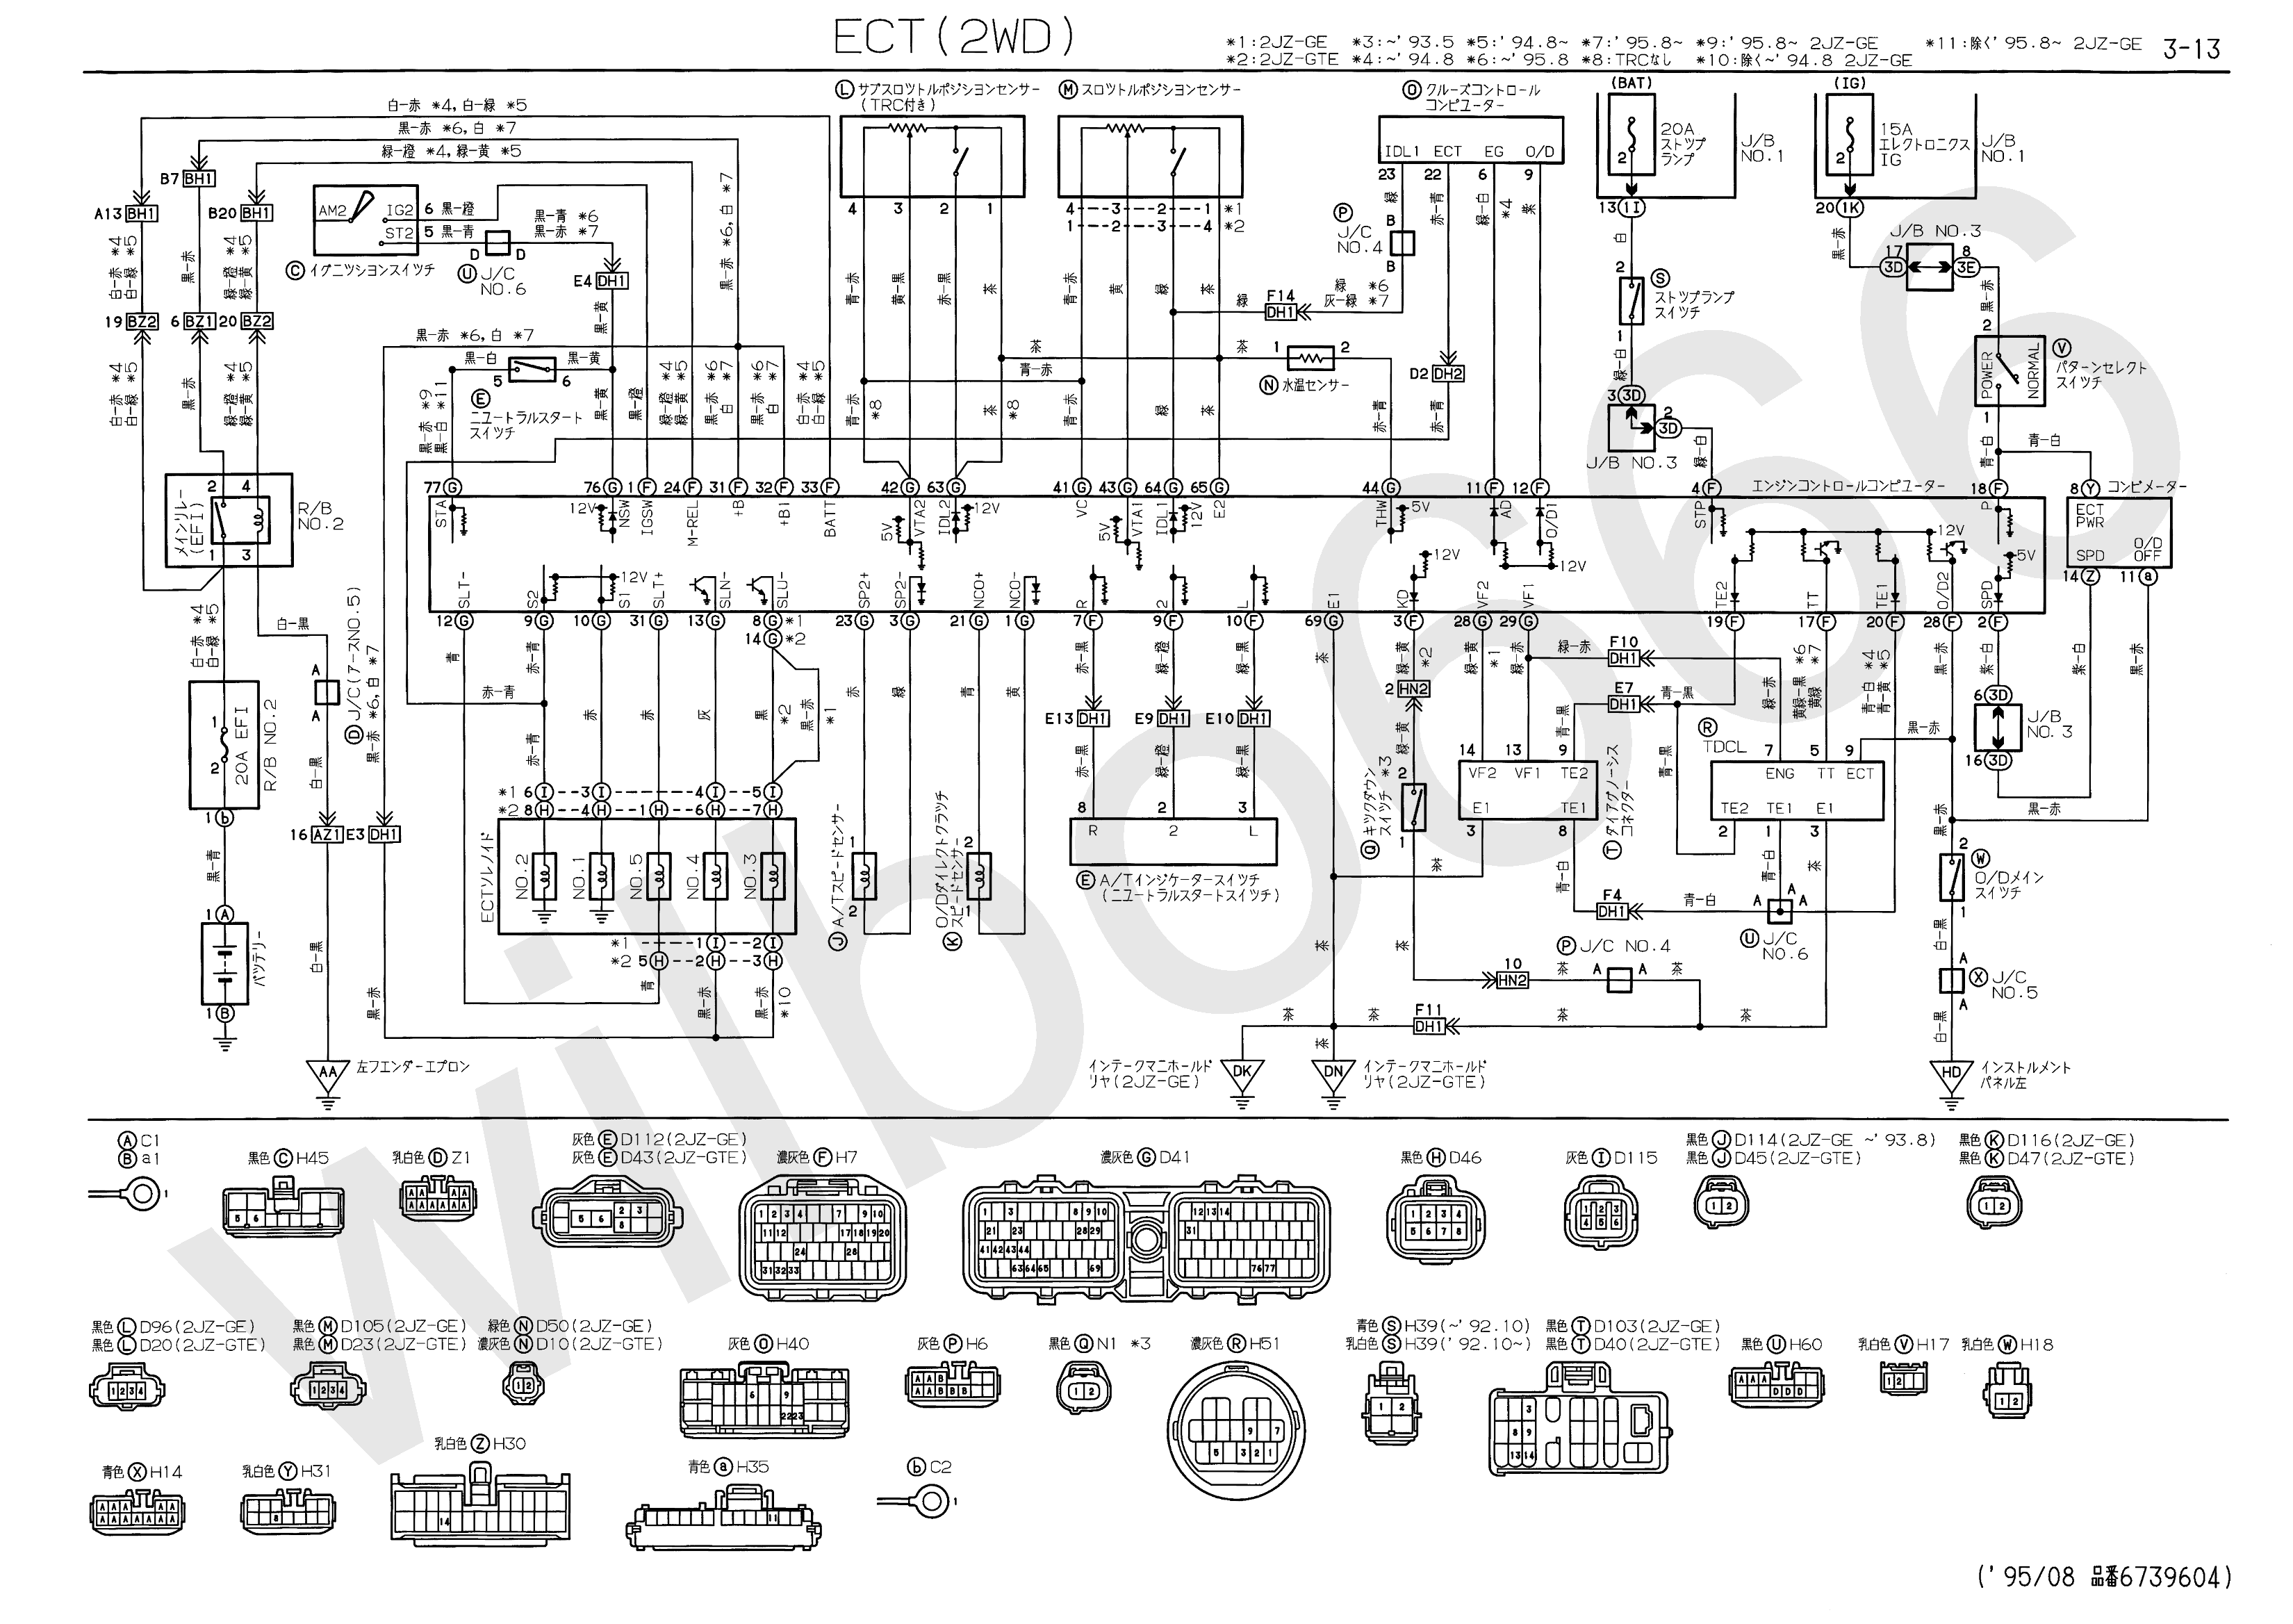 Toyota hilux wiring diagram 1989 networking vector power acoustik Fuel Gauge Wiring Diagram 2008 Chevy Impala Transmission Diagram ln106 headlight wiring diagram on ln106 headlight wiring diagram